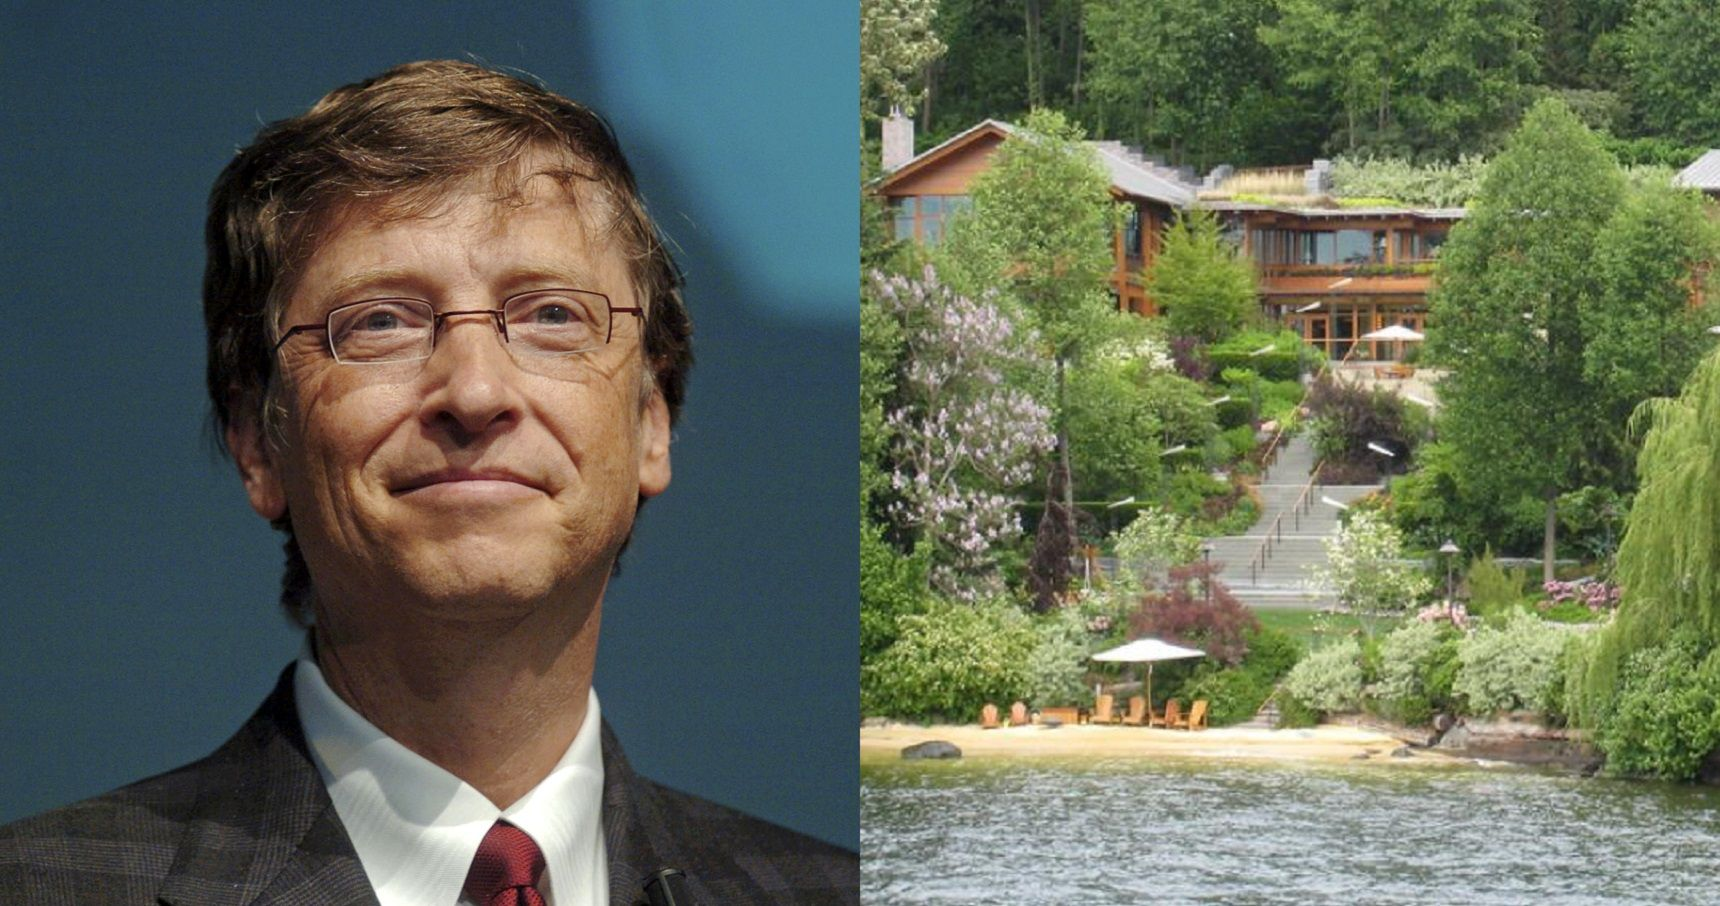 12 Unbelievable Facts About Bill Gates' House